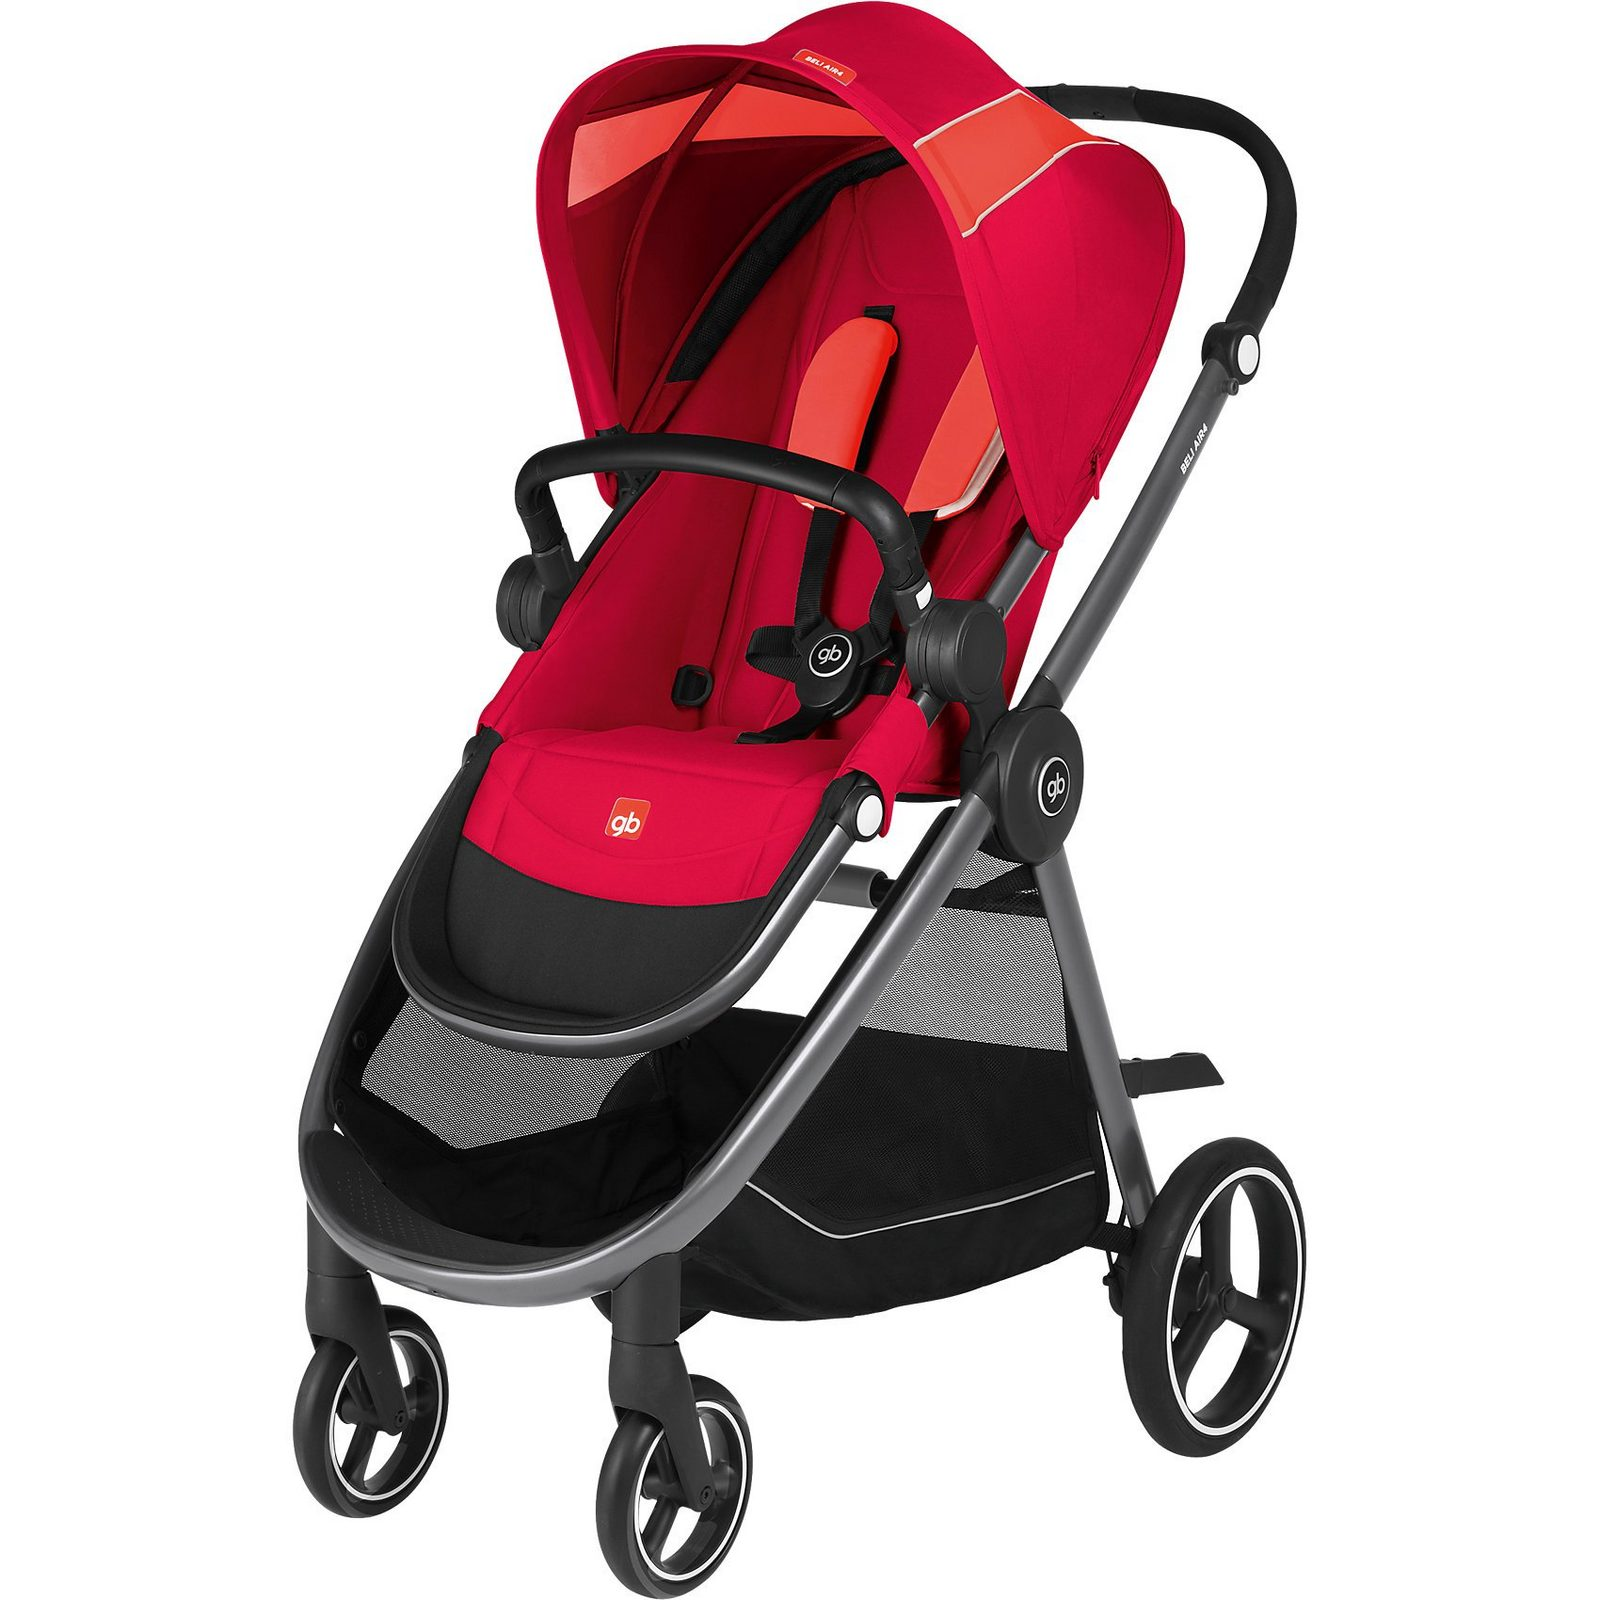 Goodbaby Sportwagen BELI AIR4, Cherry Red-Red, 2018